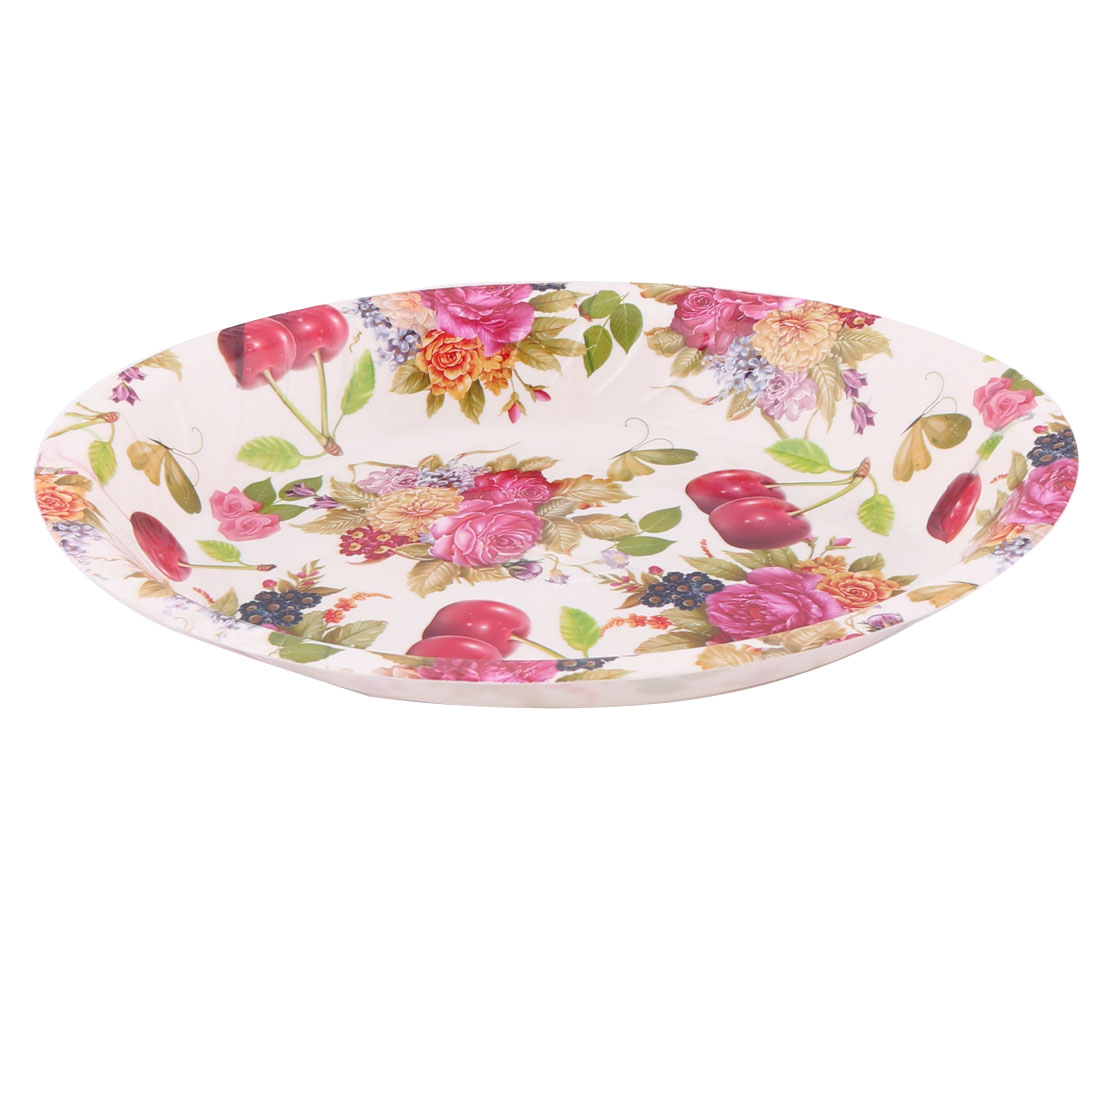 Home Plastic Flower Pattern Fruit Vegetable Dispenser Plate Tray Multicolor